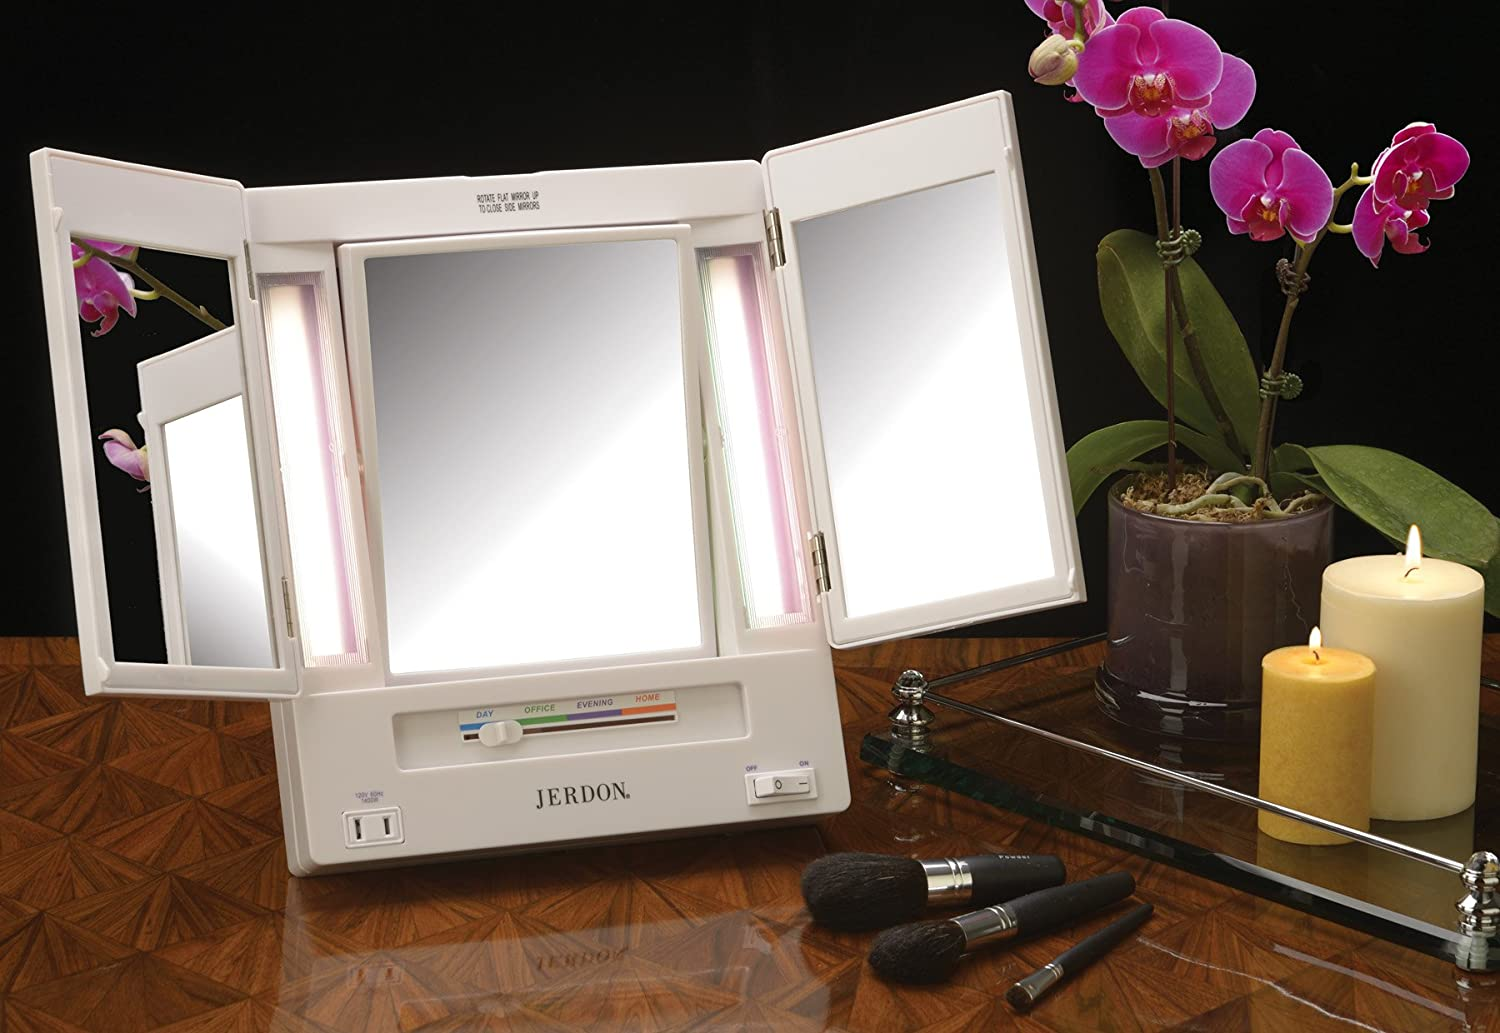 Amazon com  Jerdon Tri Fold Two Sided Lighted Makeup Mirror with 5x  Magnification  White Finish  Beauty. Amazon com  Jerdon Tri Fold Two Sided Lighted Makeup Mirror with